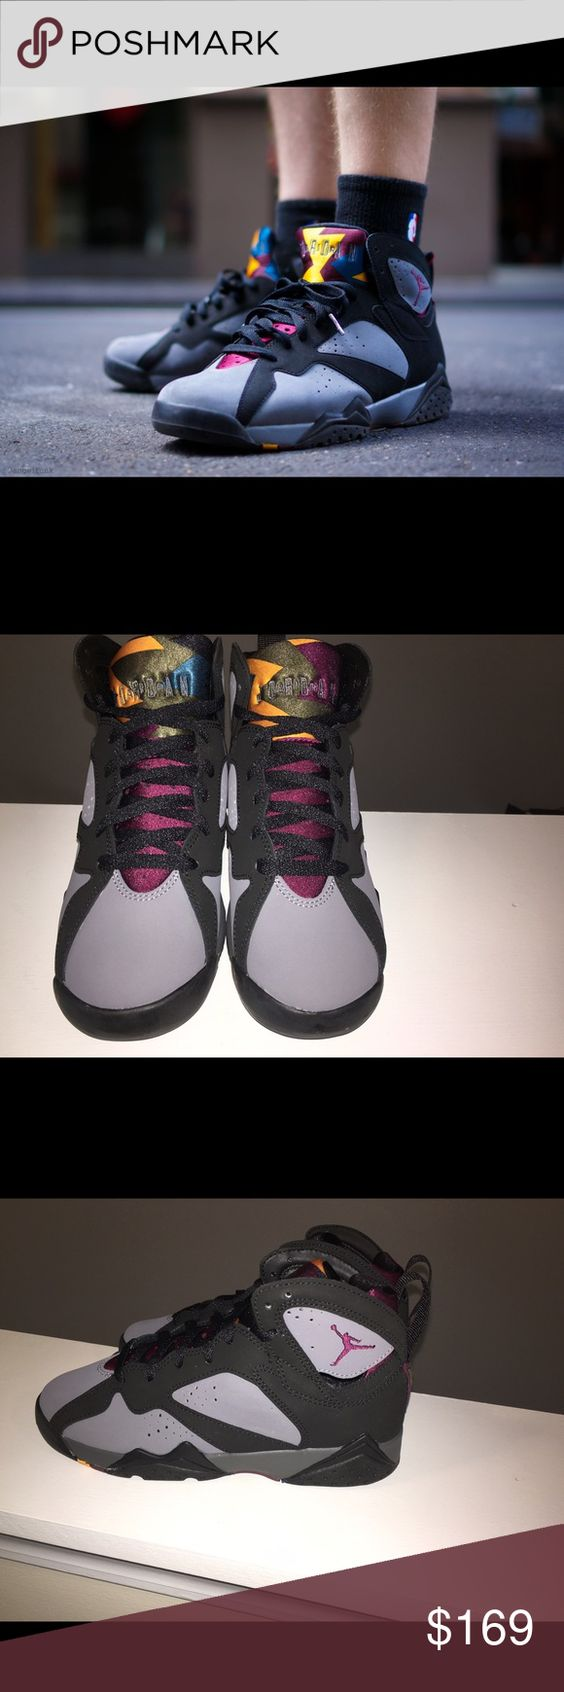 Brand New Air Jordan Retro 7 BG Bordeaux Brand New 100% Authentic Jordan Bordeaux. Sz 5 Y/ 6.5 women's. Box is missing lid. Please only submit offers via the offer button only . Low ballers will be ignored. No trades. Jordan Shoes Sneakers